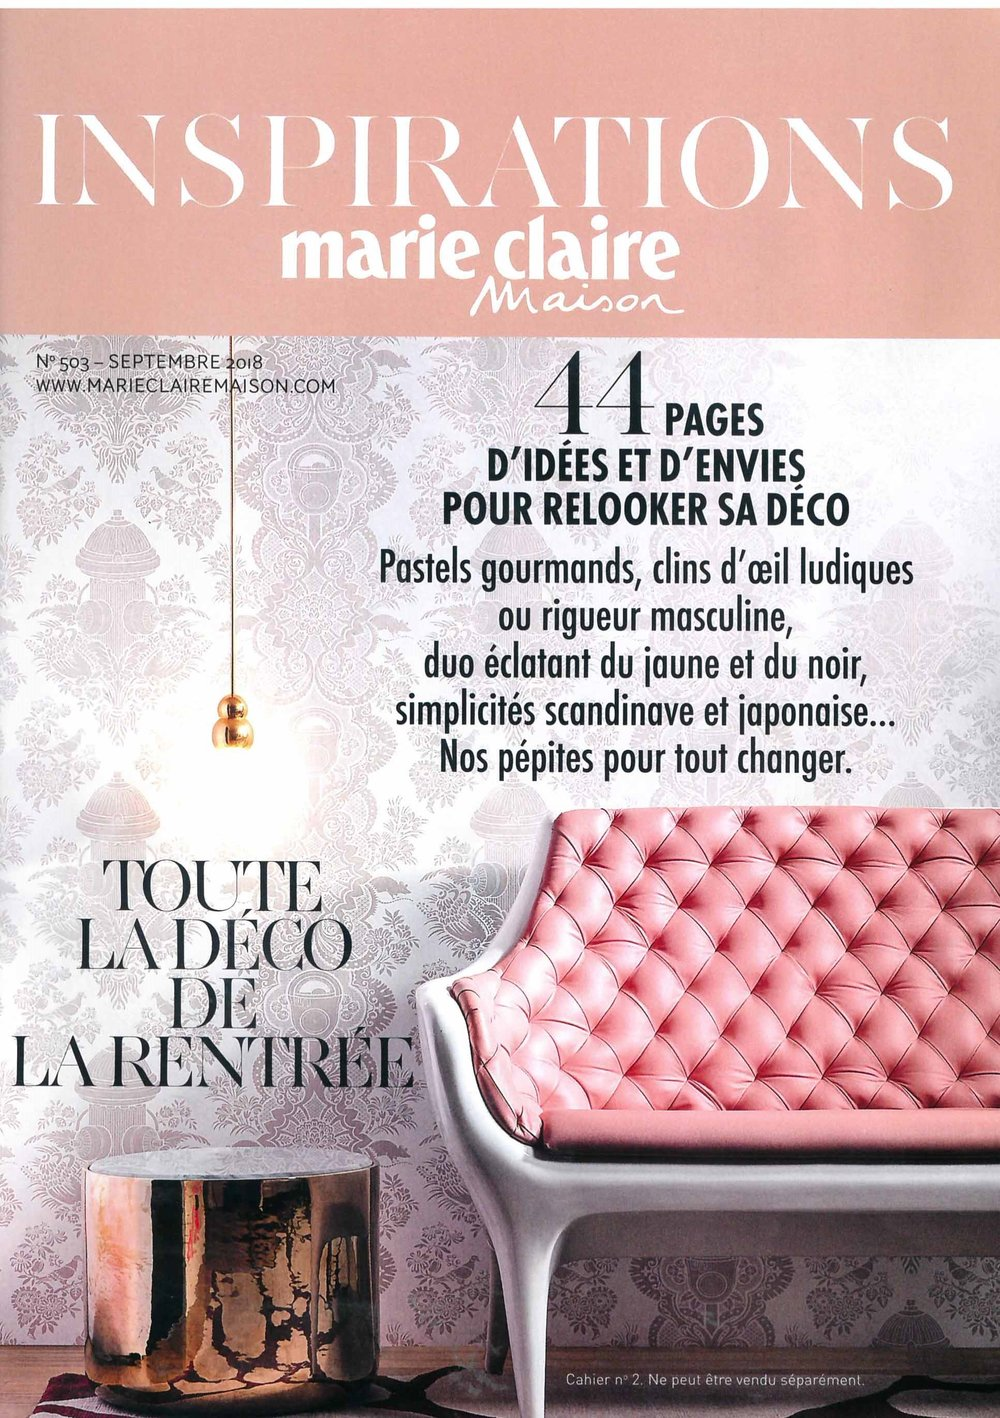 2018 09 marie claire maison inspirations france cover 3 jpg